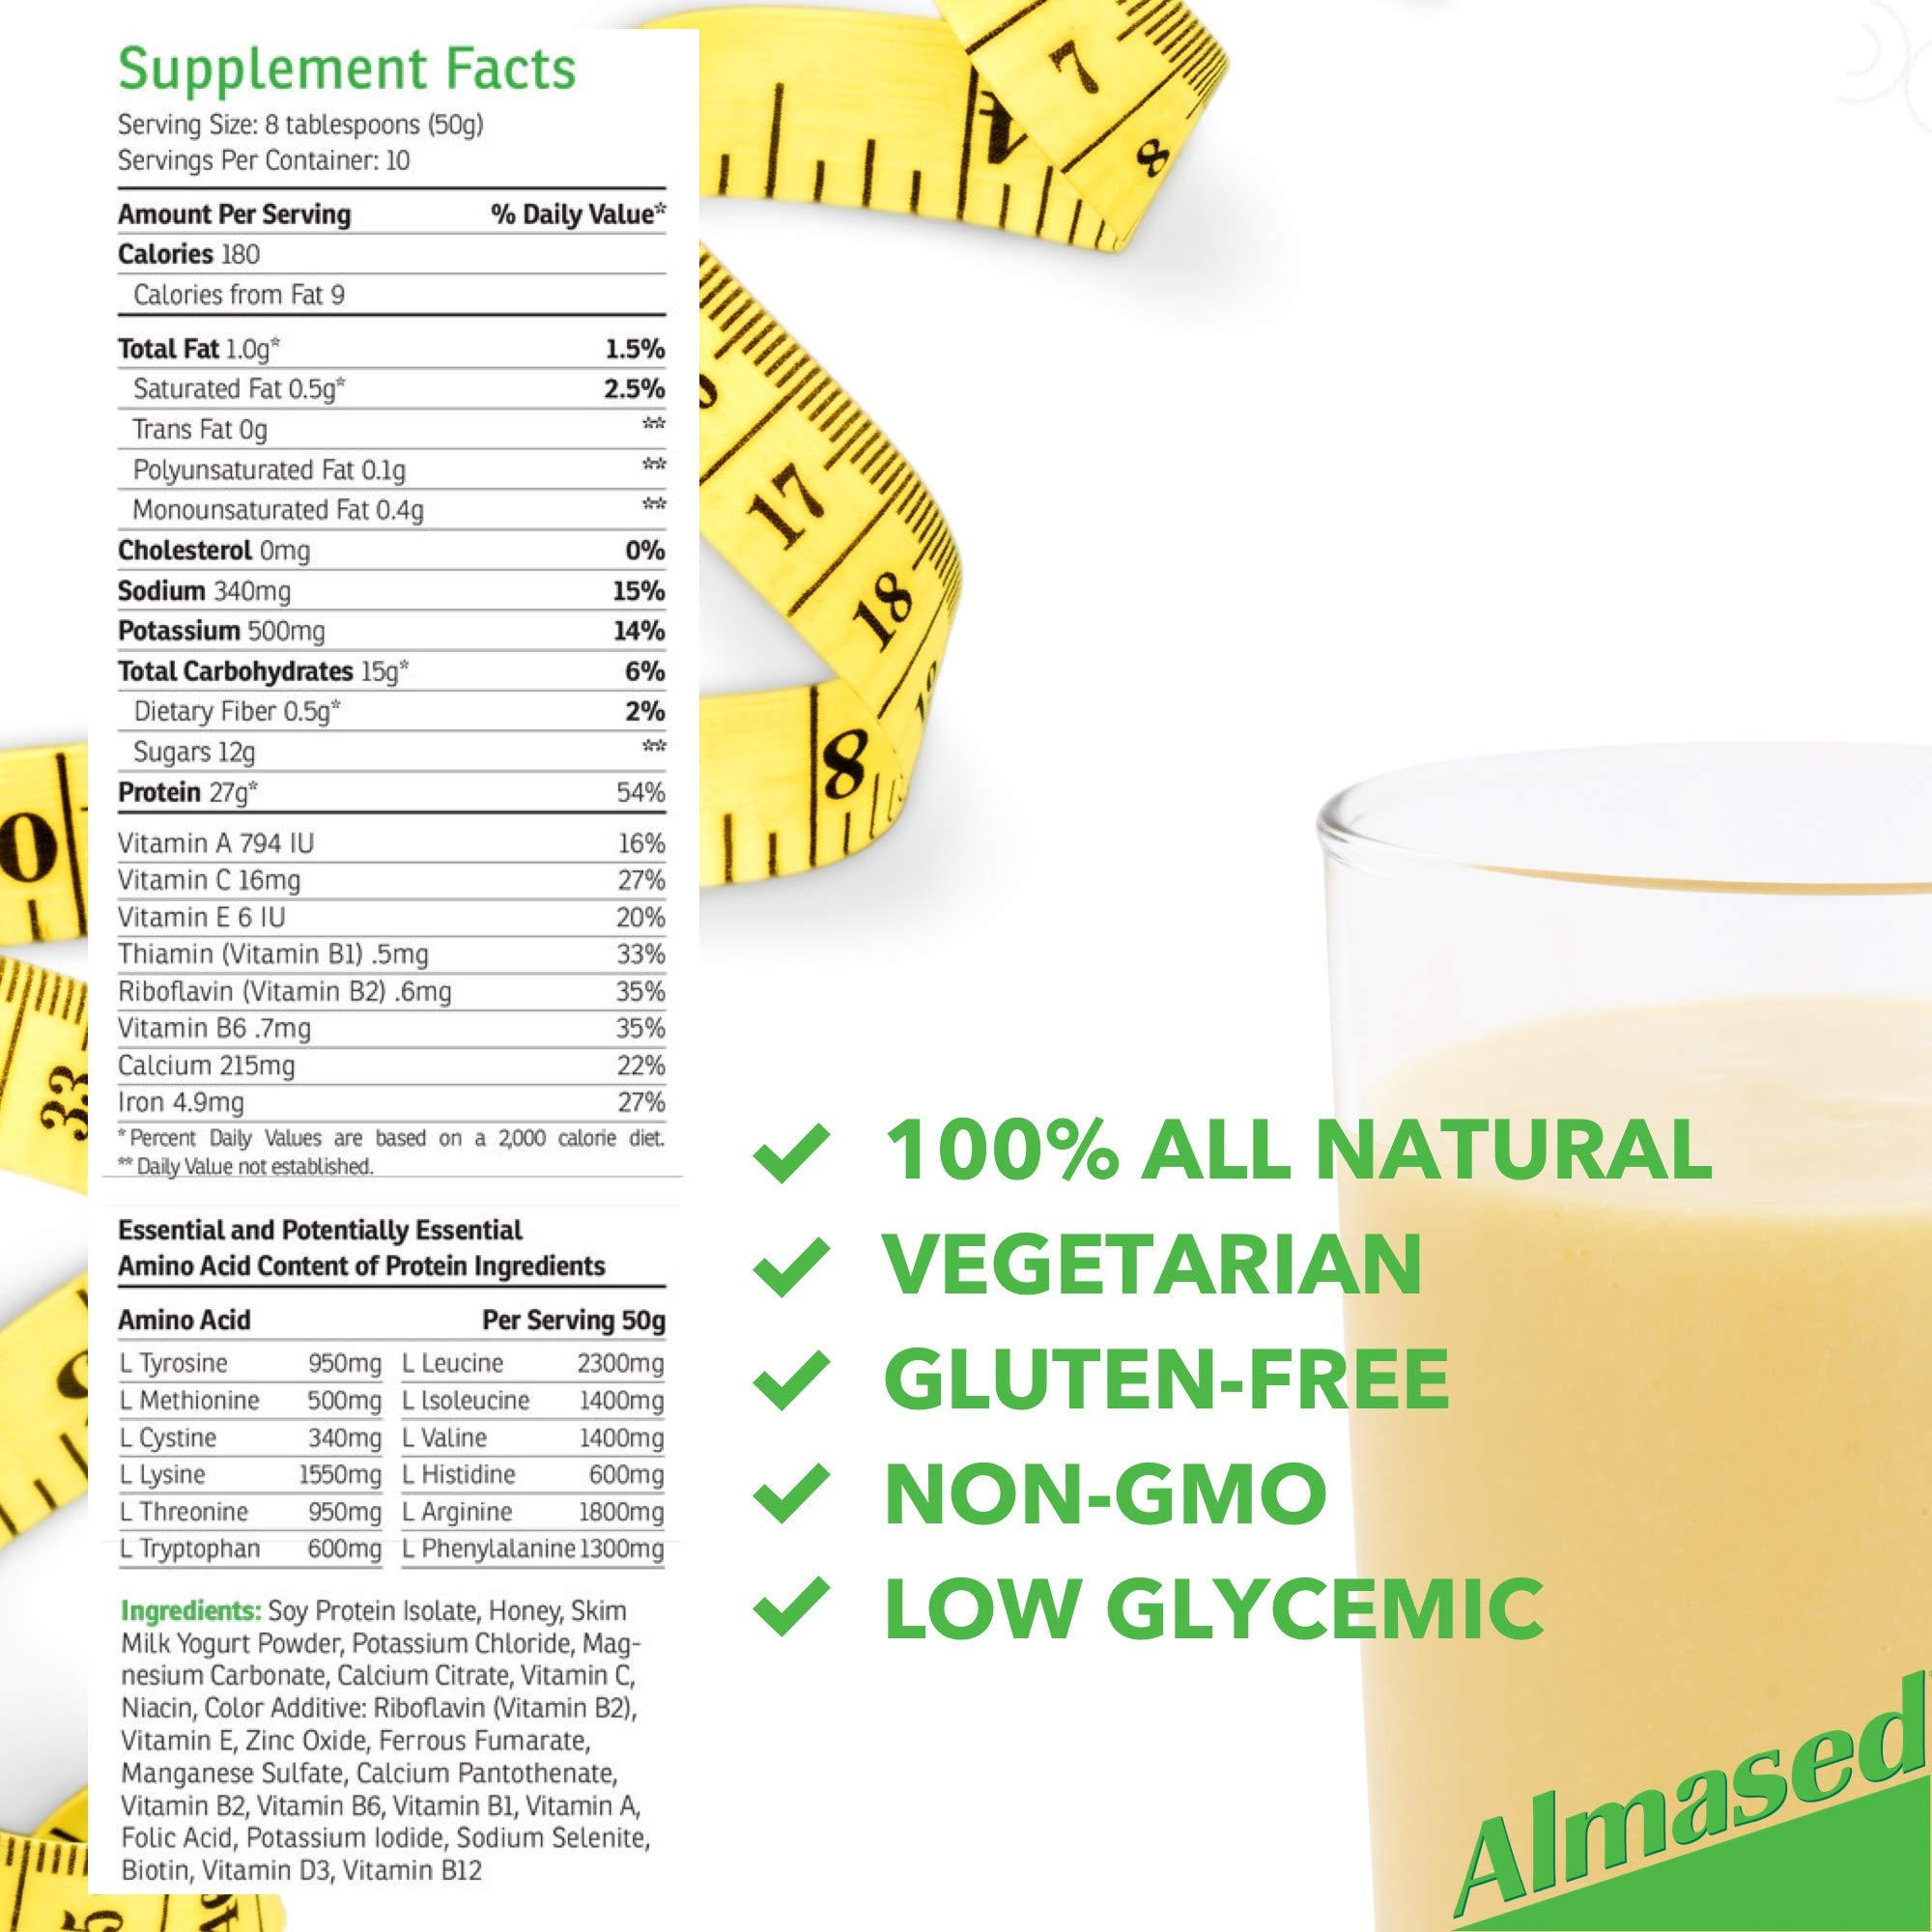 Almased Meal Replacement Shake (3 Pack) with Bonus Bamboo Spoon - 17.6 oz Powder - High Protein Weight Loss Drink, Fat Metabolism Booster - Vegetarian, Gluten Free - 30 Total Servings by Almased (Image #6)